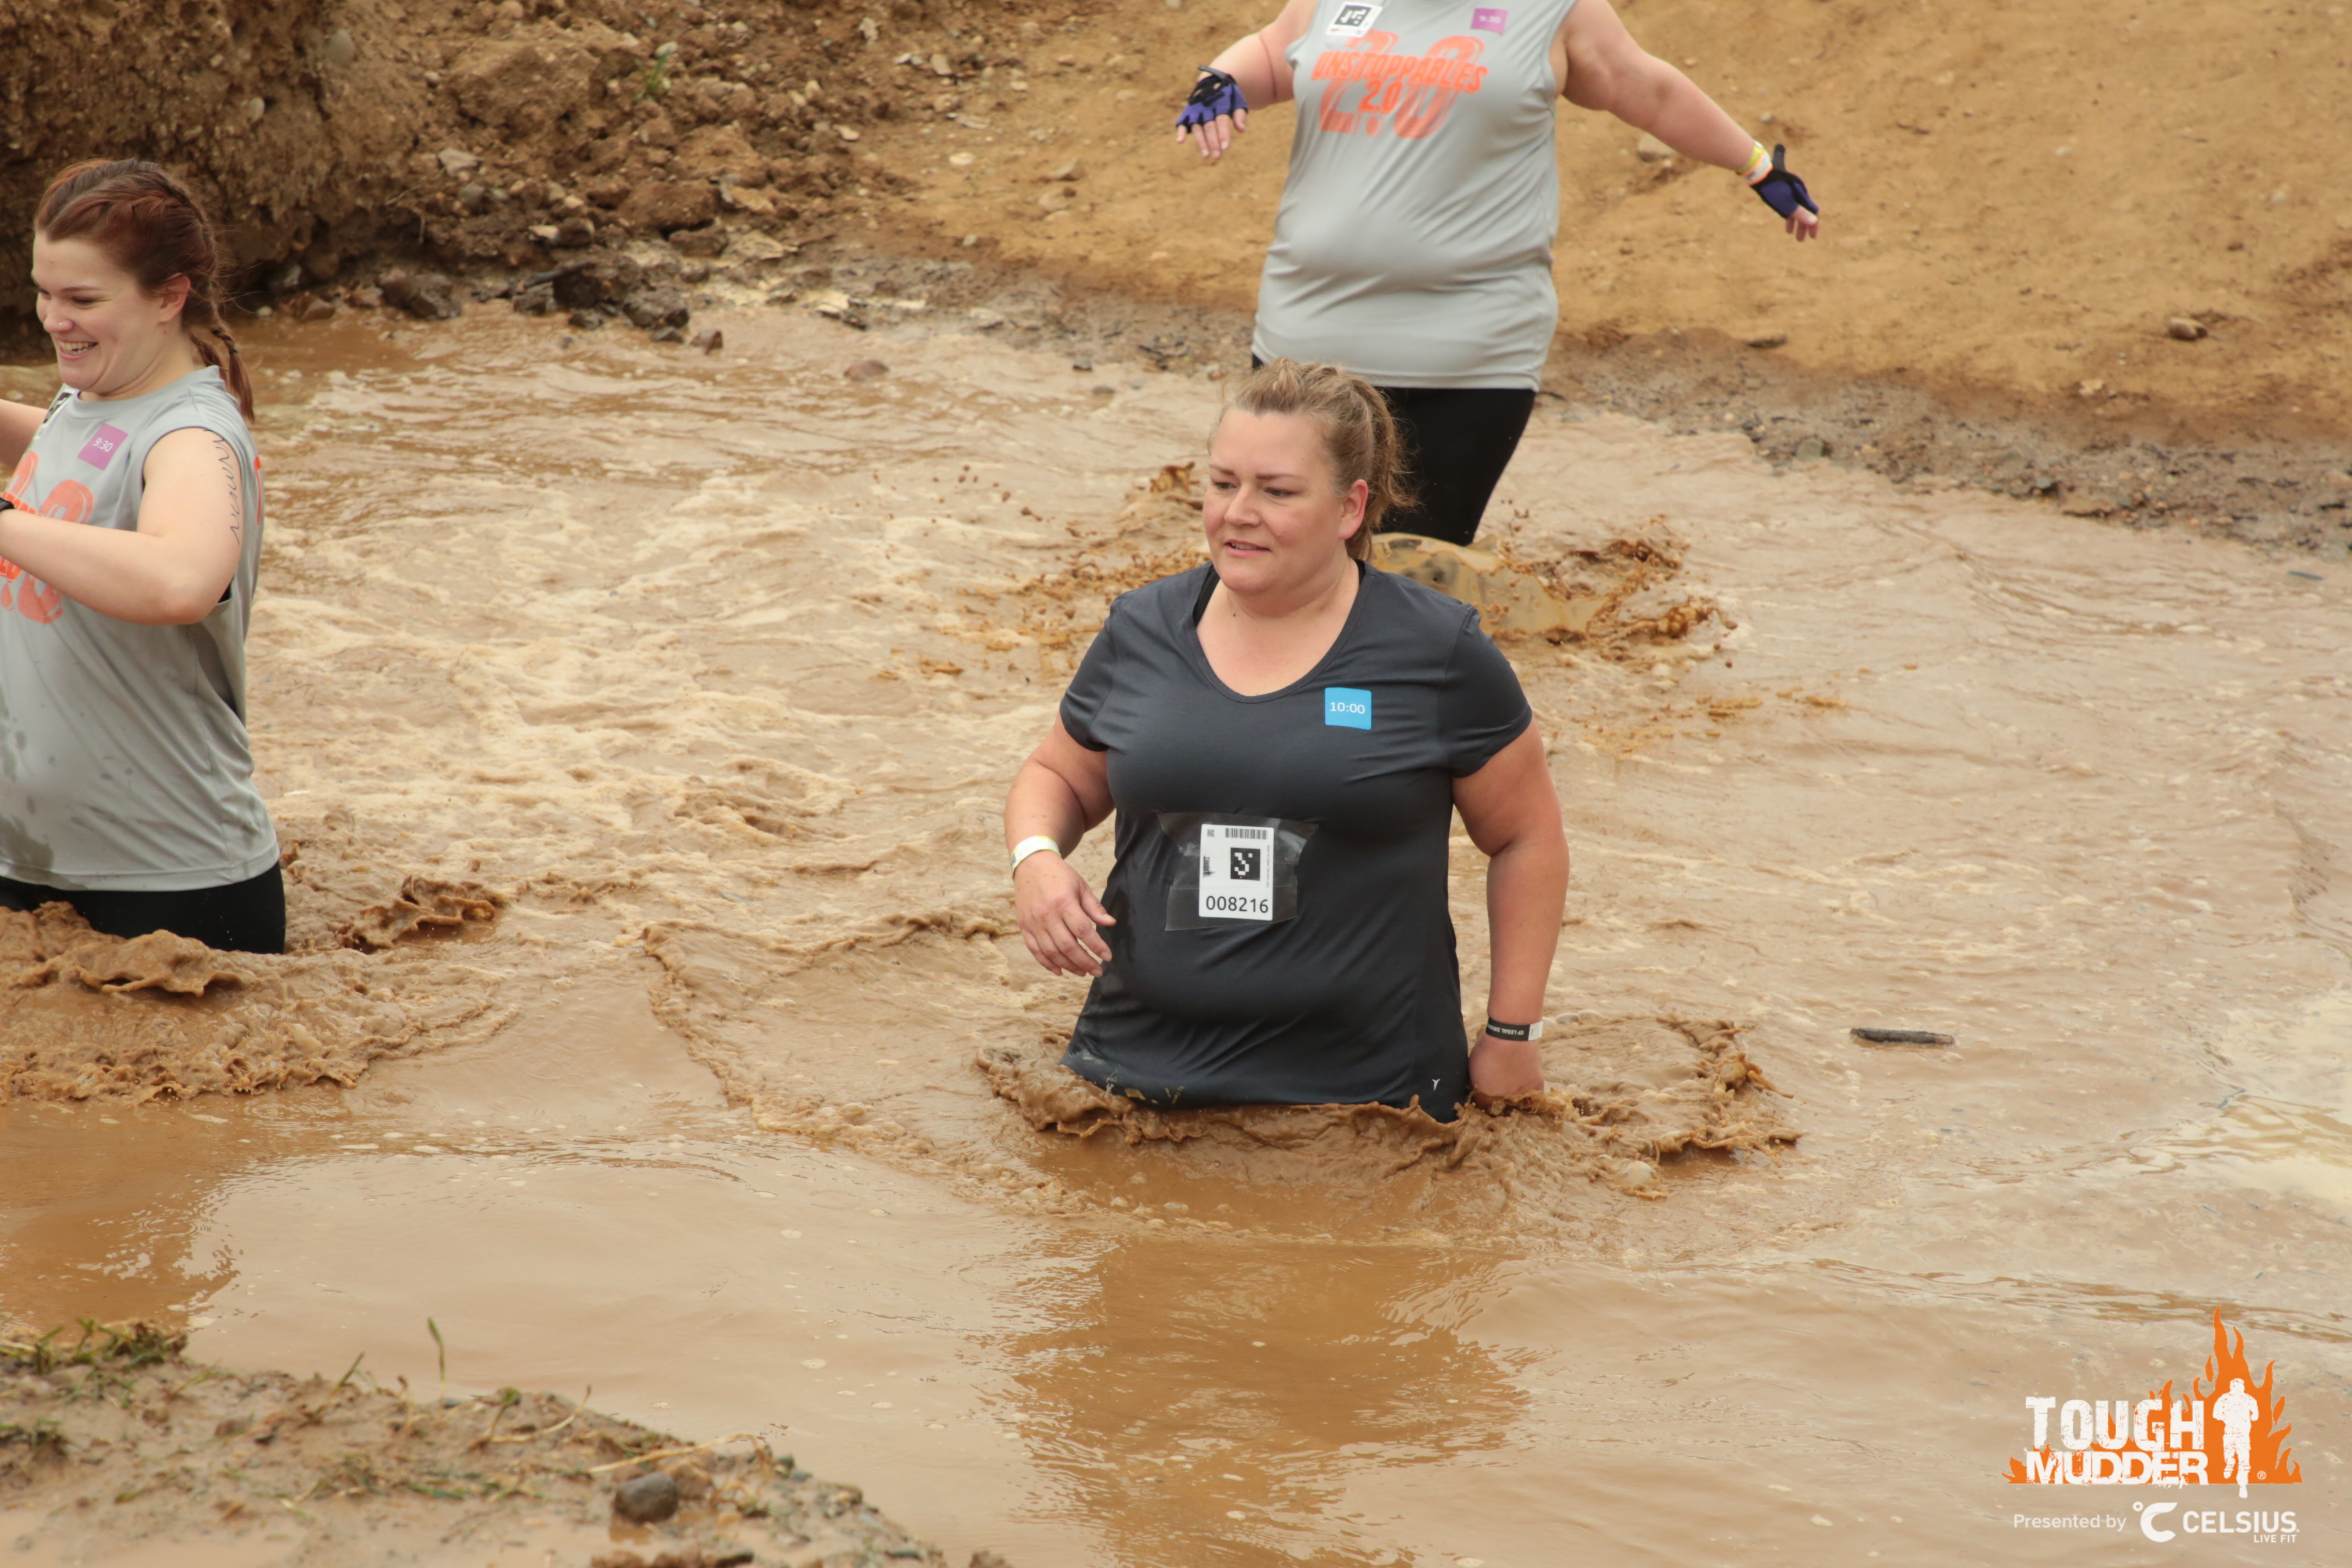 Is a tough mudder hard?